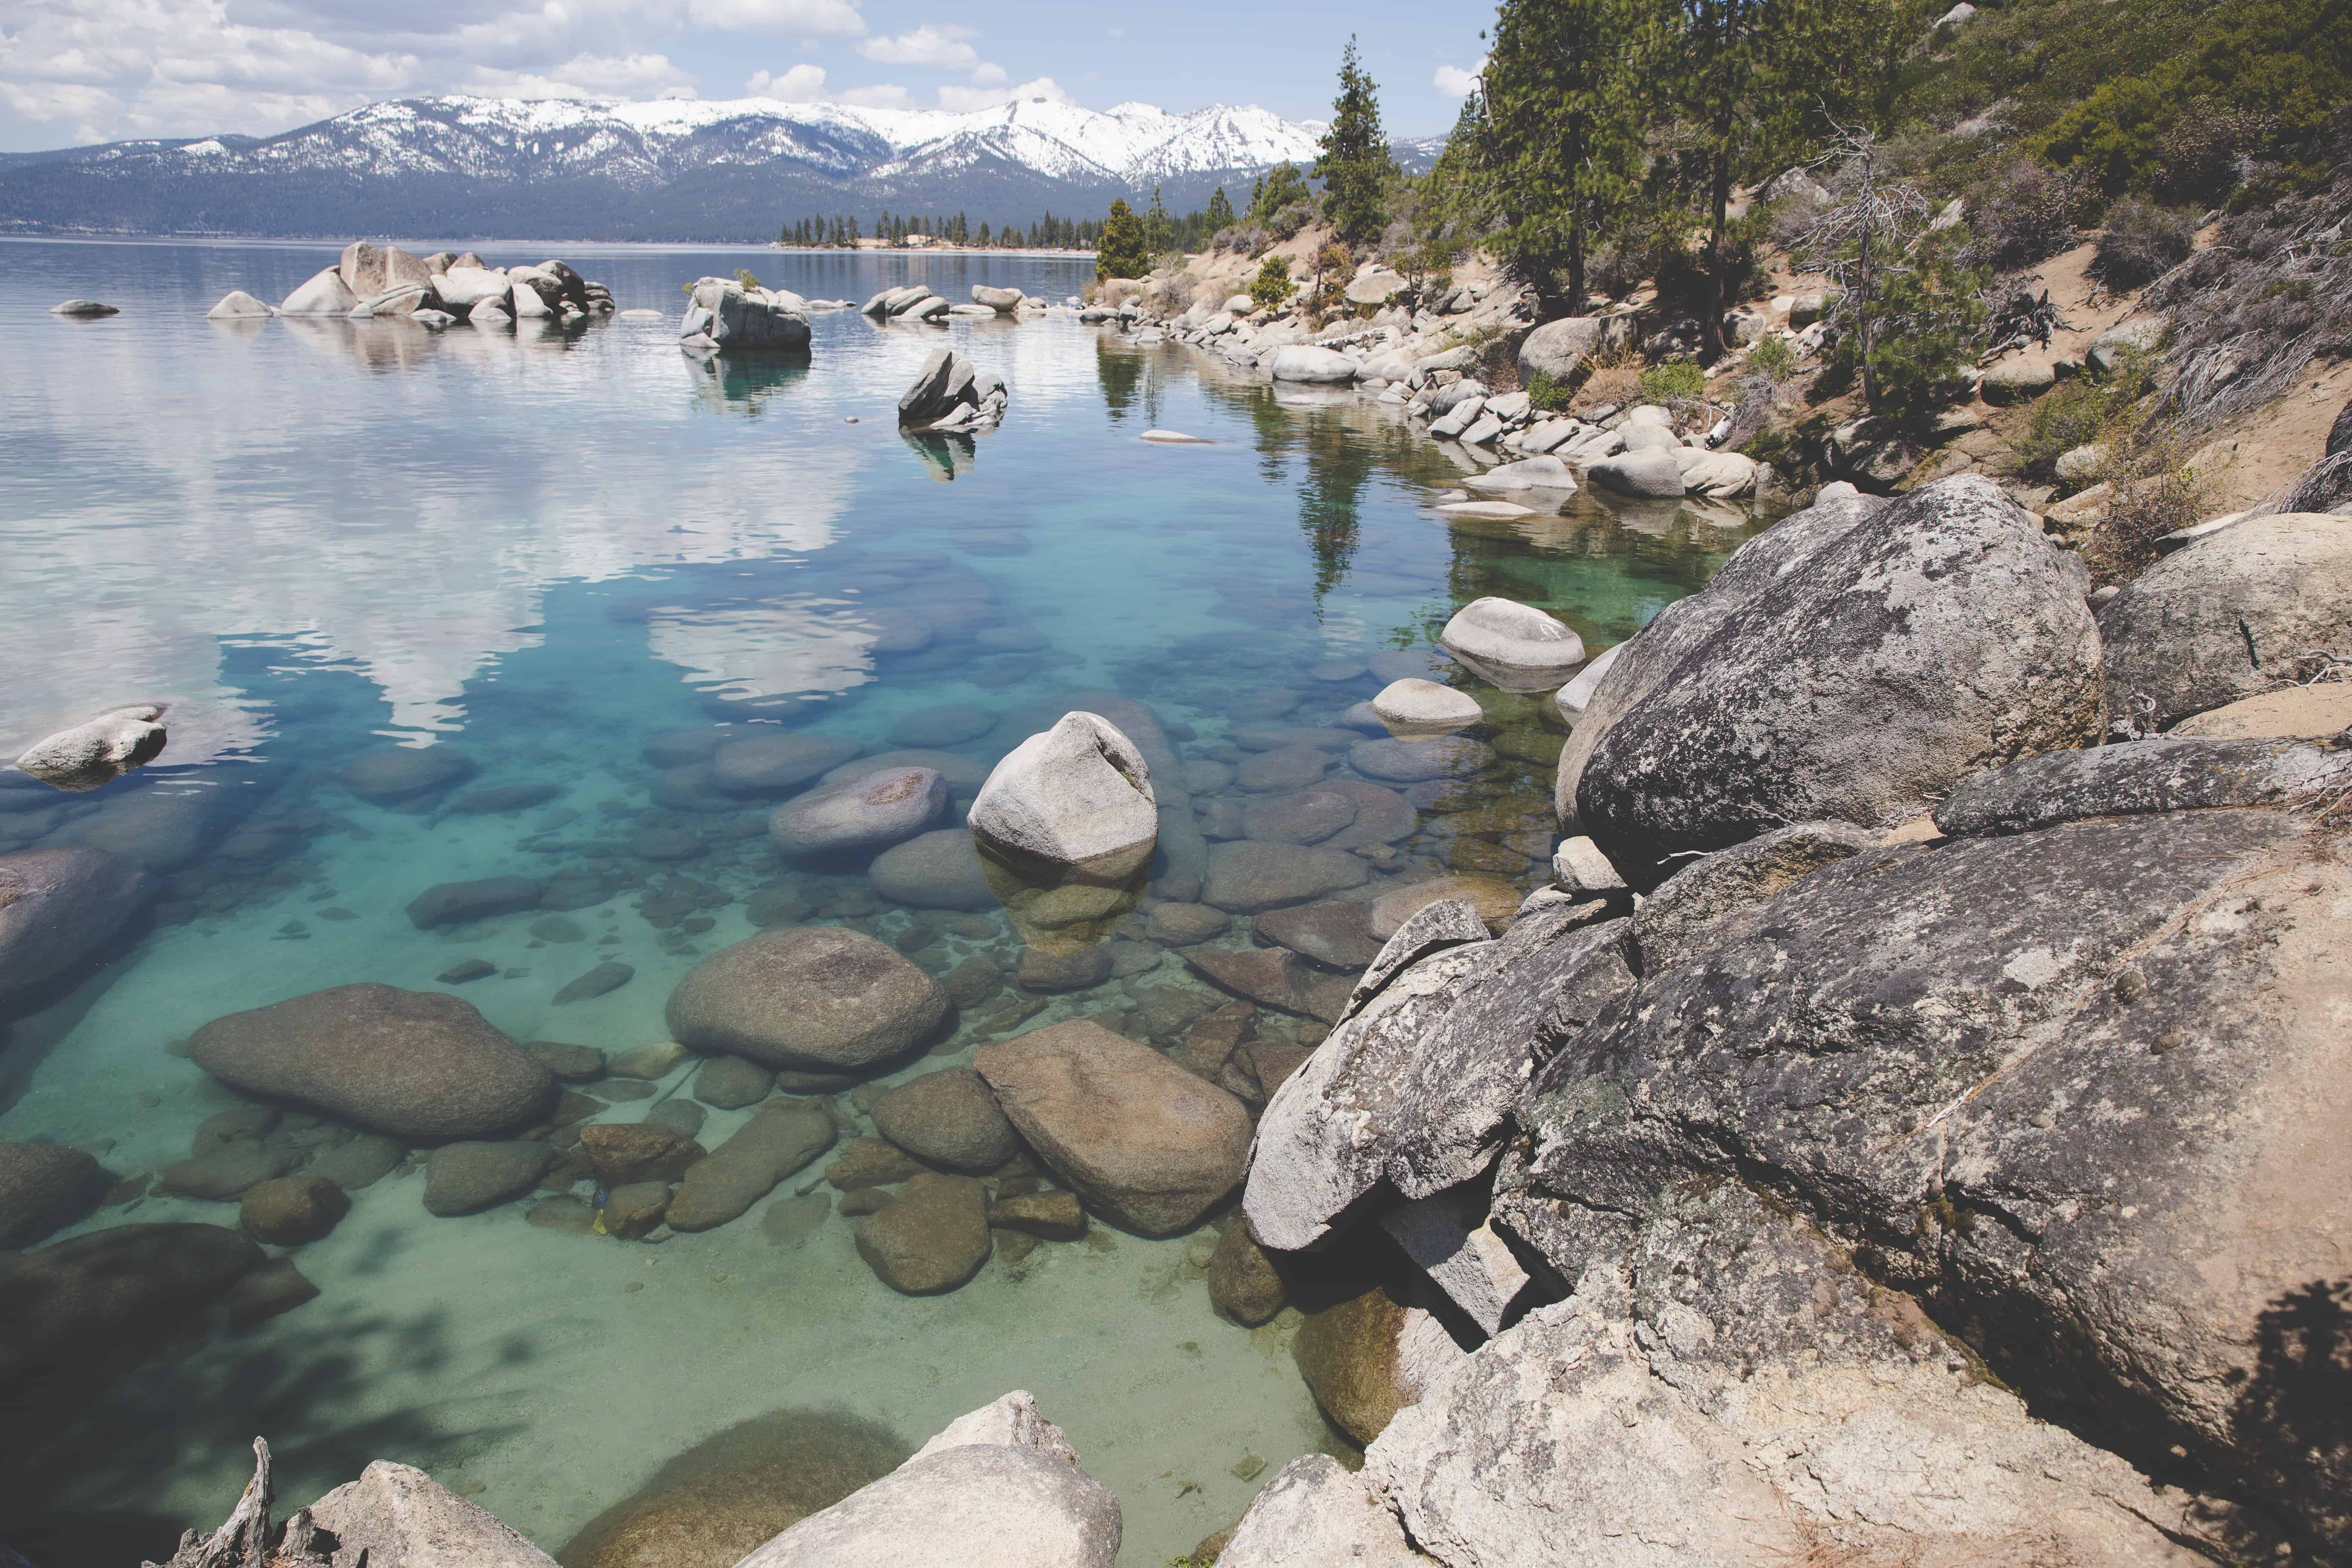 North Lake Tahoe in California is a great place to visit during fall in Northern California